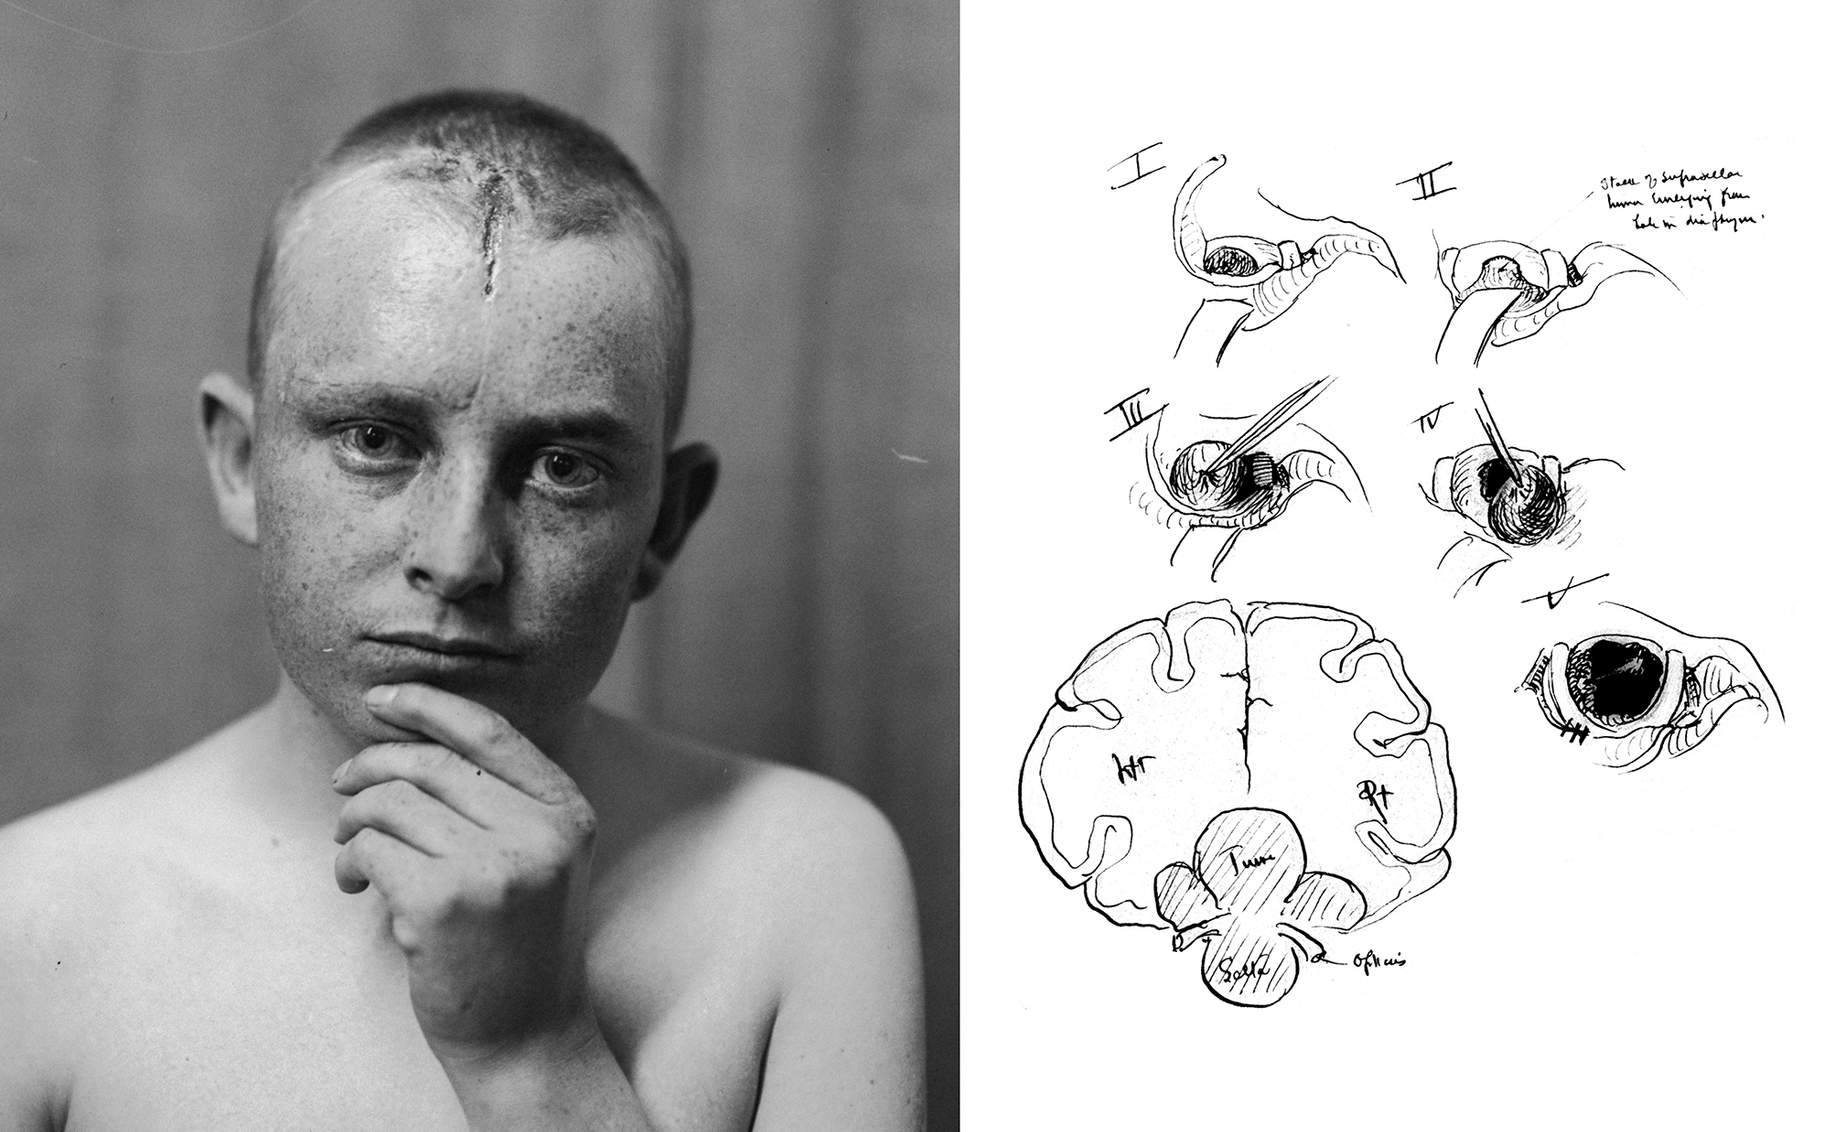 Figure 3: By 1929, Cushing had excelled in transcranial techniques and abandoned the transnasal route in favor of the subfrontal approach. In his notes, he documented the incision (left) and operative findings (right) for the subfrontal approach to a craniopharyngioma (Courtesy of the Cushing Brain Tumor Registry at Yale University).